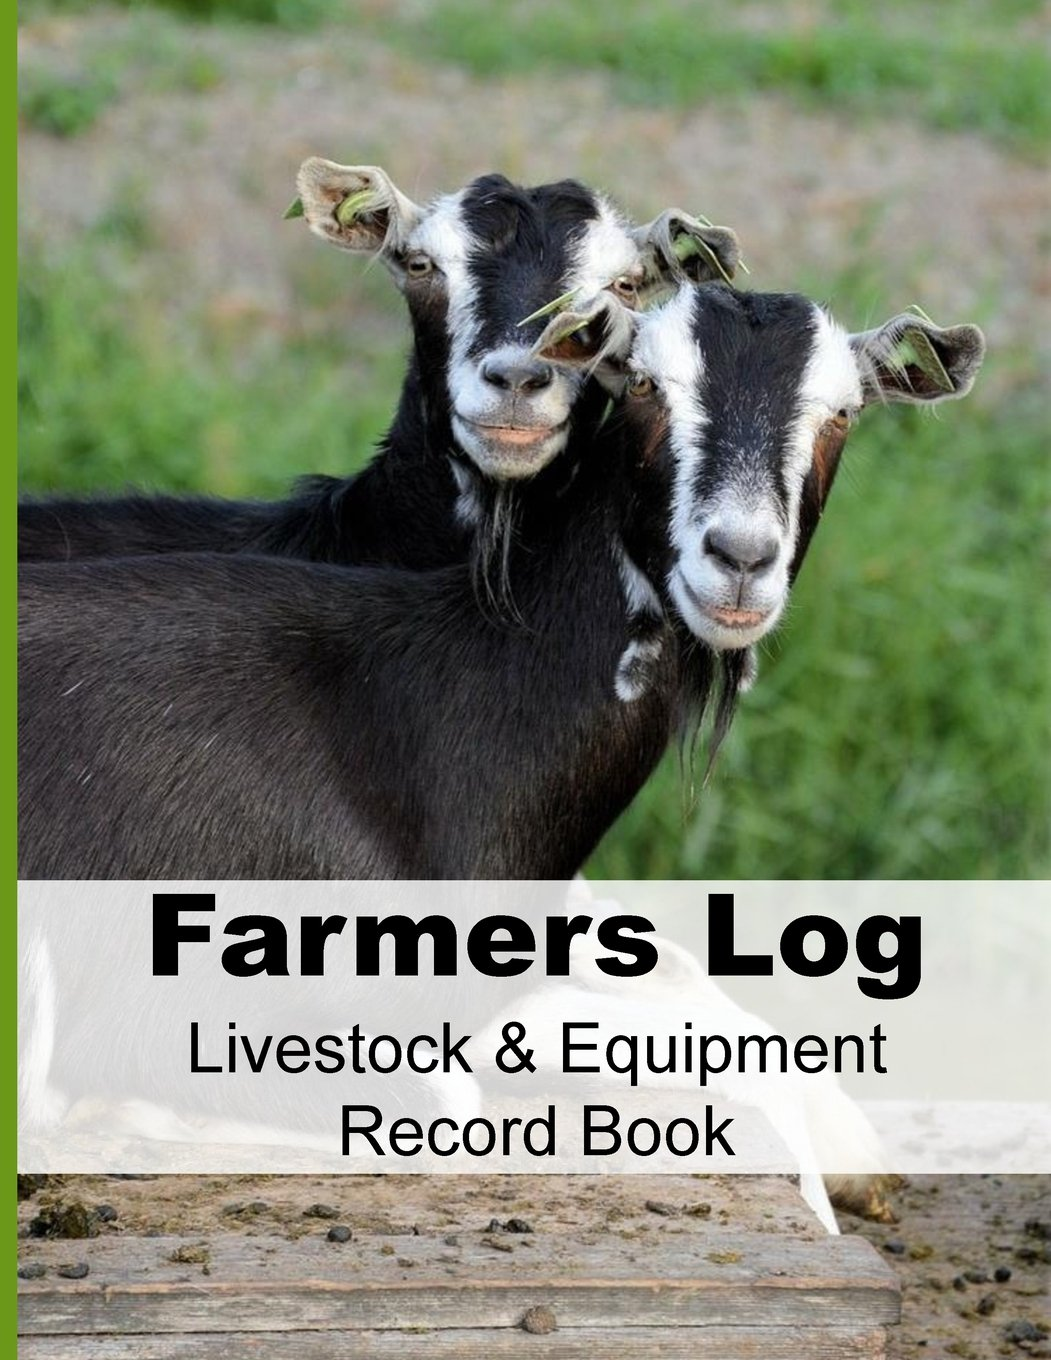 Farmers Log - Livestock & Equipment Record Book: For Busy Farmers , Ranchers and Folks That Help Them (Small Farms and Homestead Living) (Volume 8) pdf